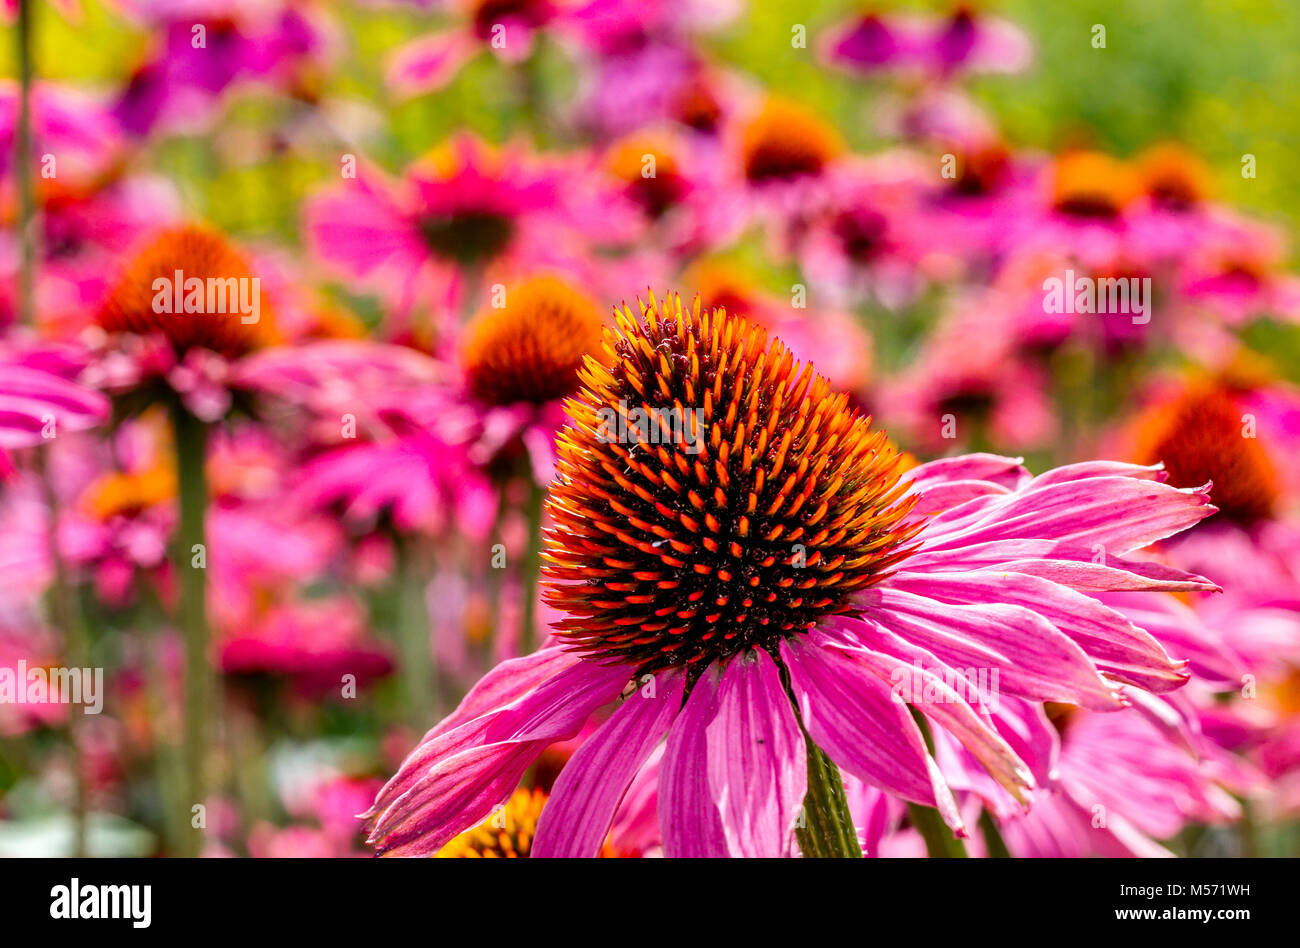 Echinacea purpurea 'Rubinglow' or commonly known as purple coneflower 'Rubinglow' - Stock Image